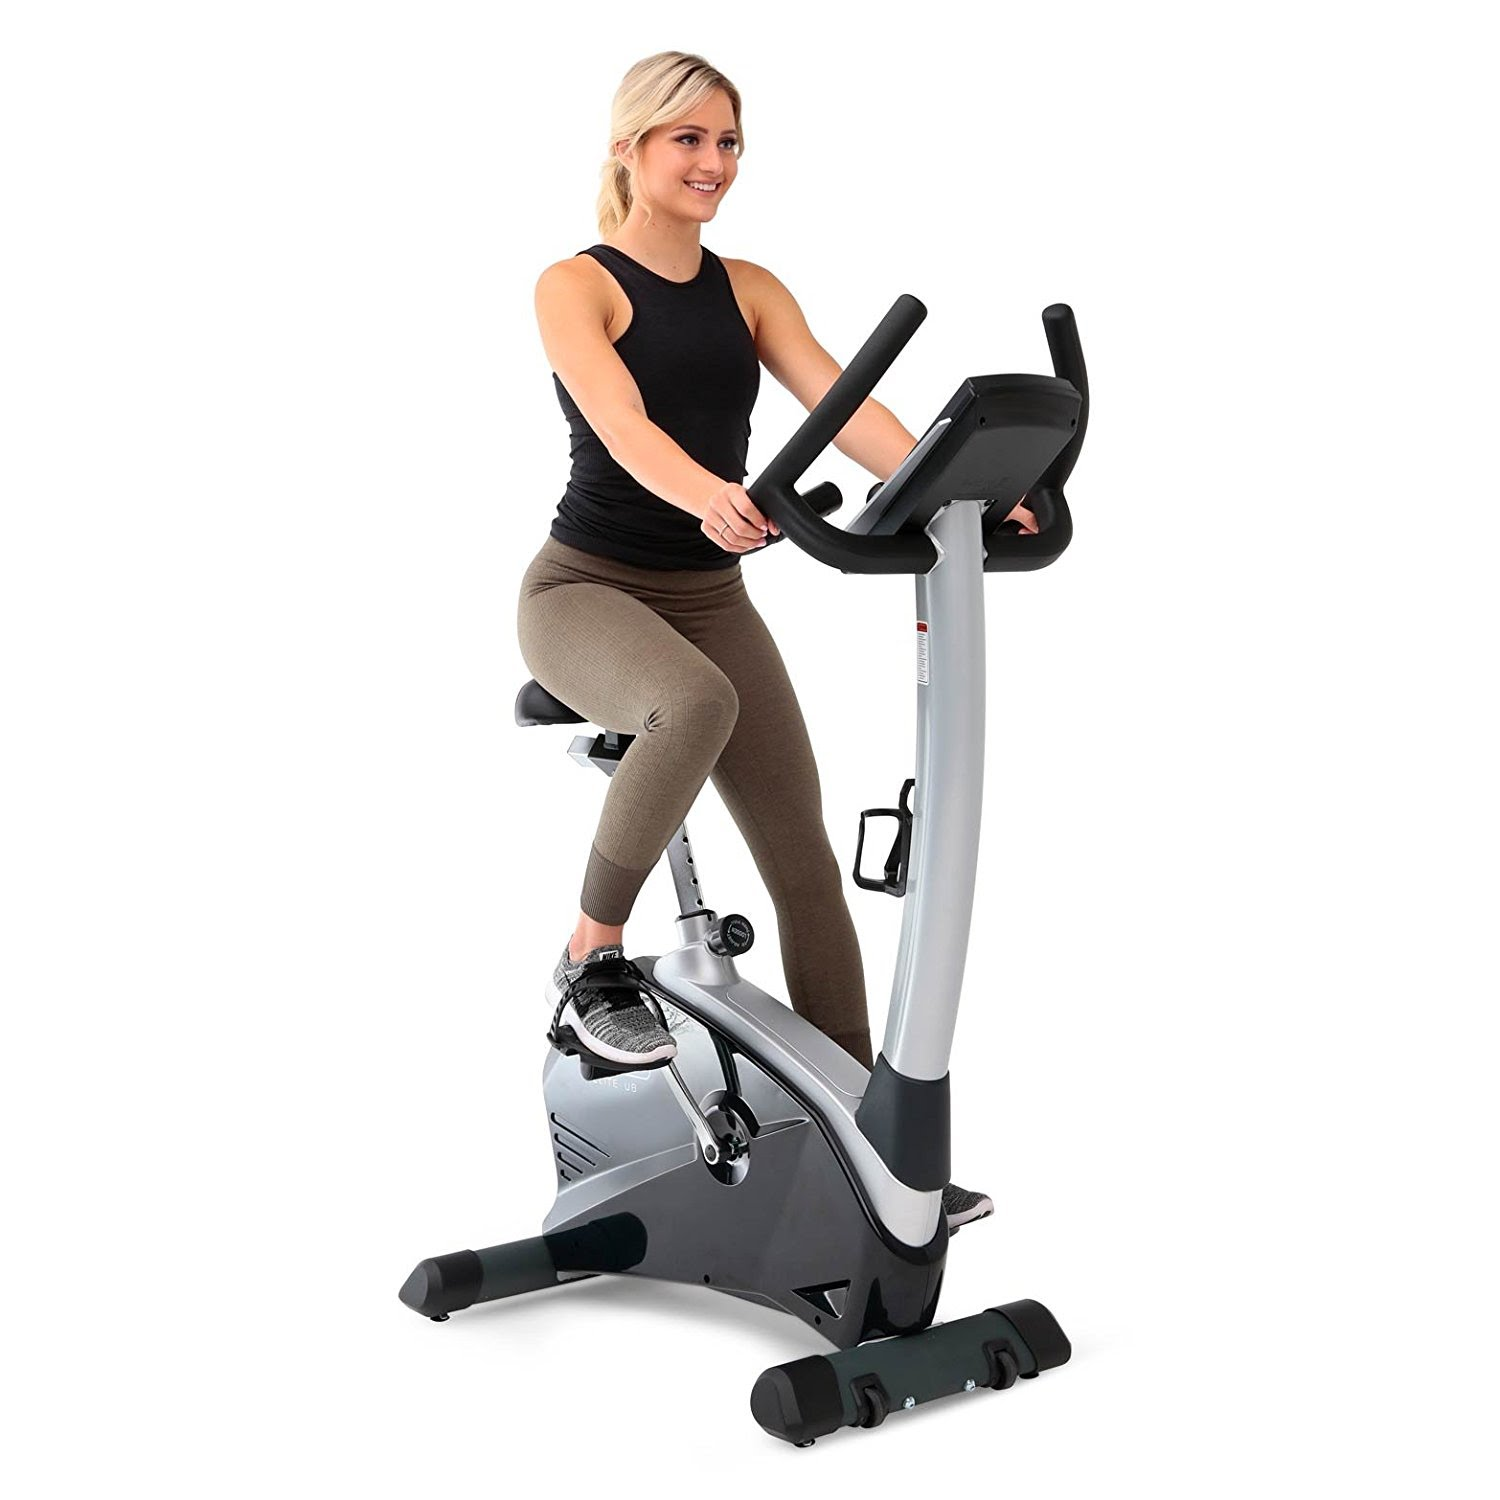 Proform 350 Spx Exercise Bike Pfex02914: Exercise Bike Zone: 3G Cardio Elite UB Upright Exercise